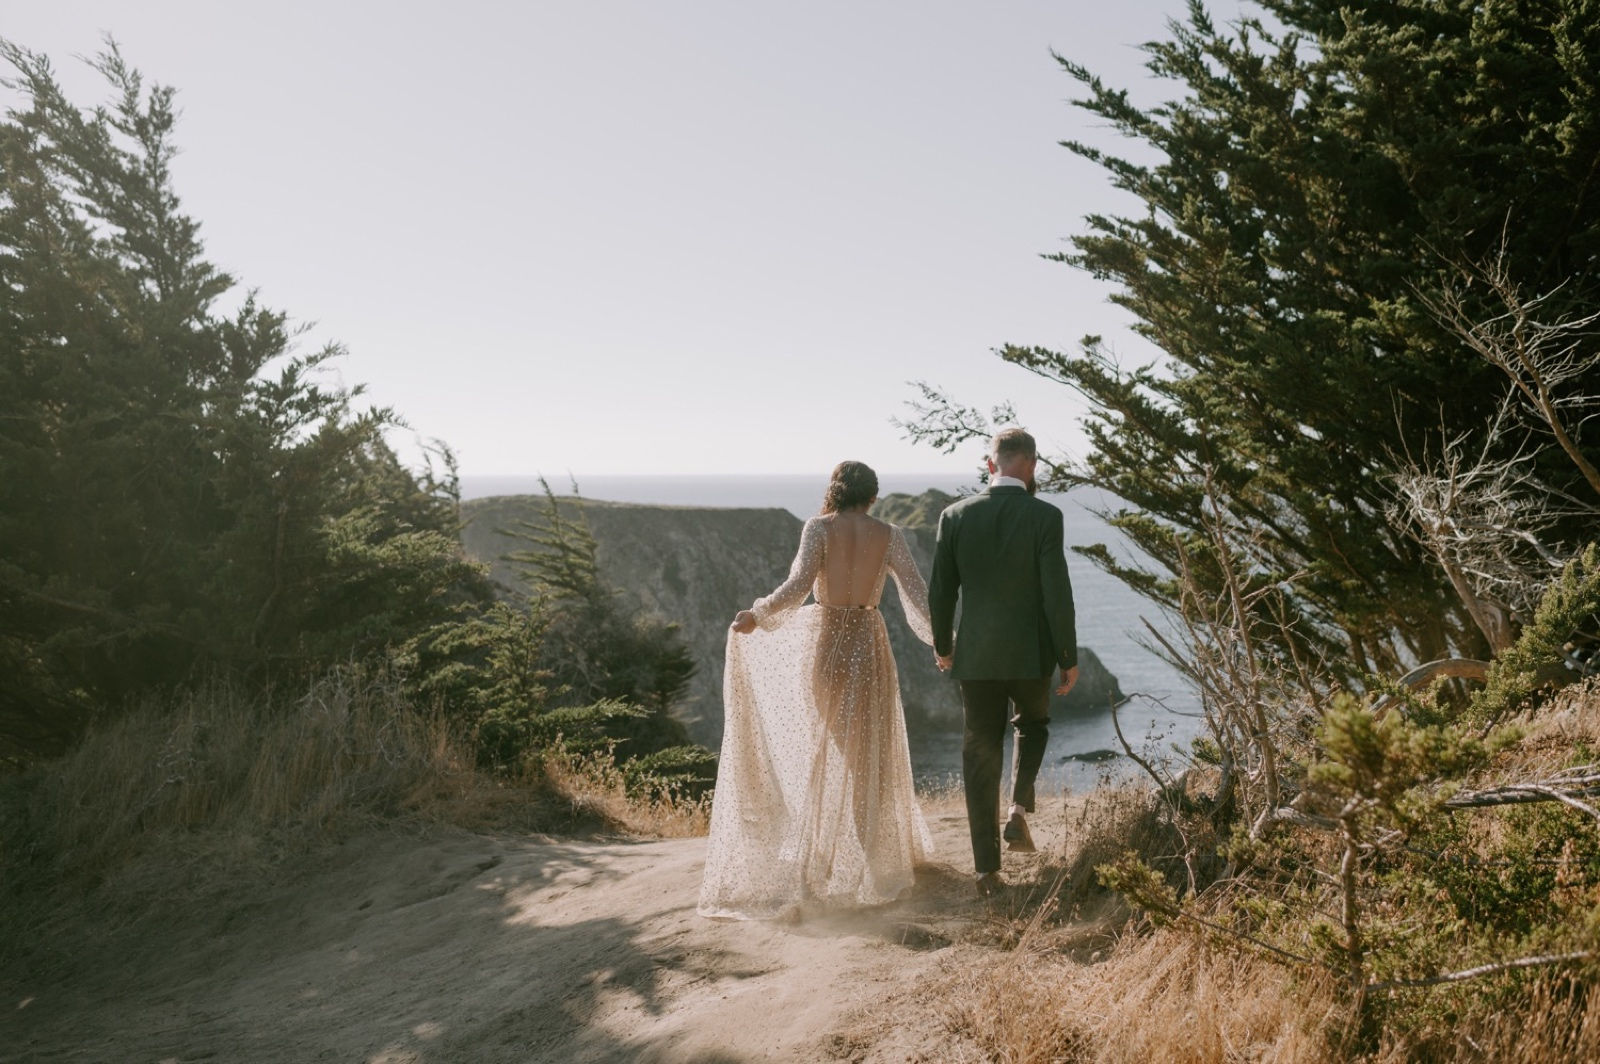 Mendocino_Wedding_Cuffeys_Cove102.JPG